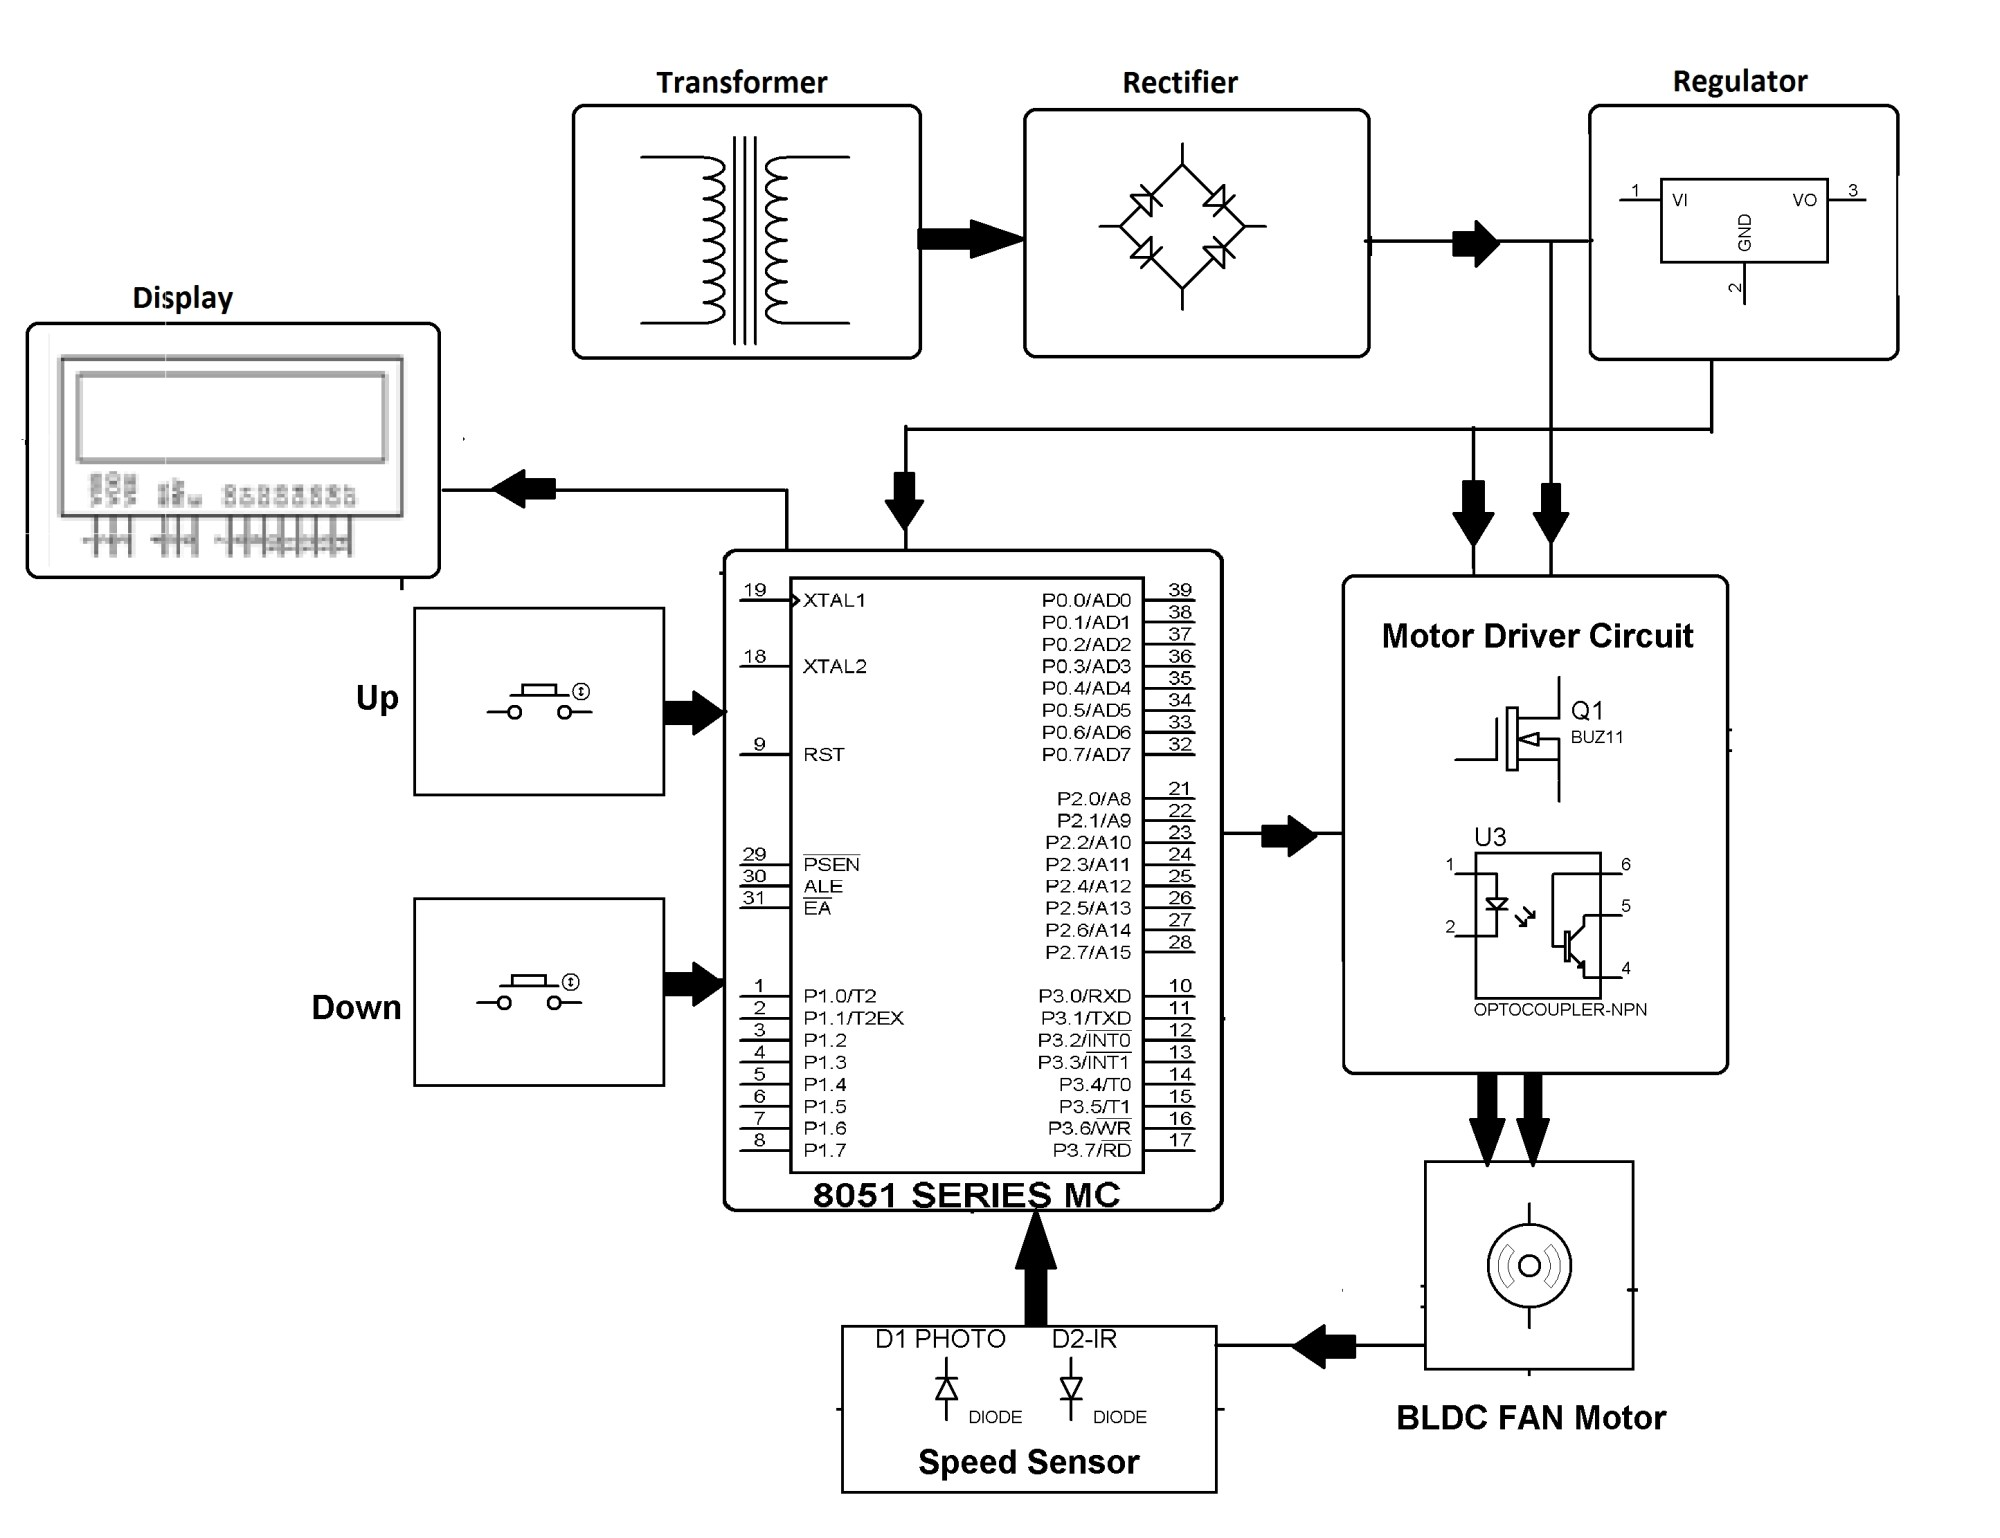 hight resolution of bldc motor controller wiring diagram two speed motor wiring diagram 3 phase fresh rpm display